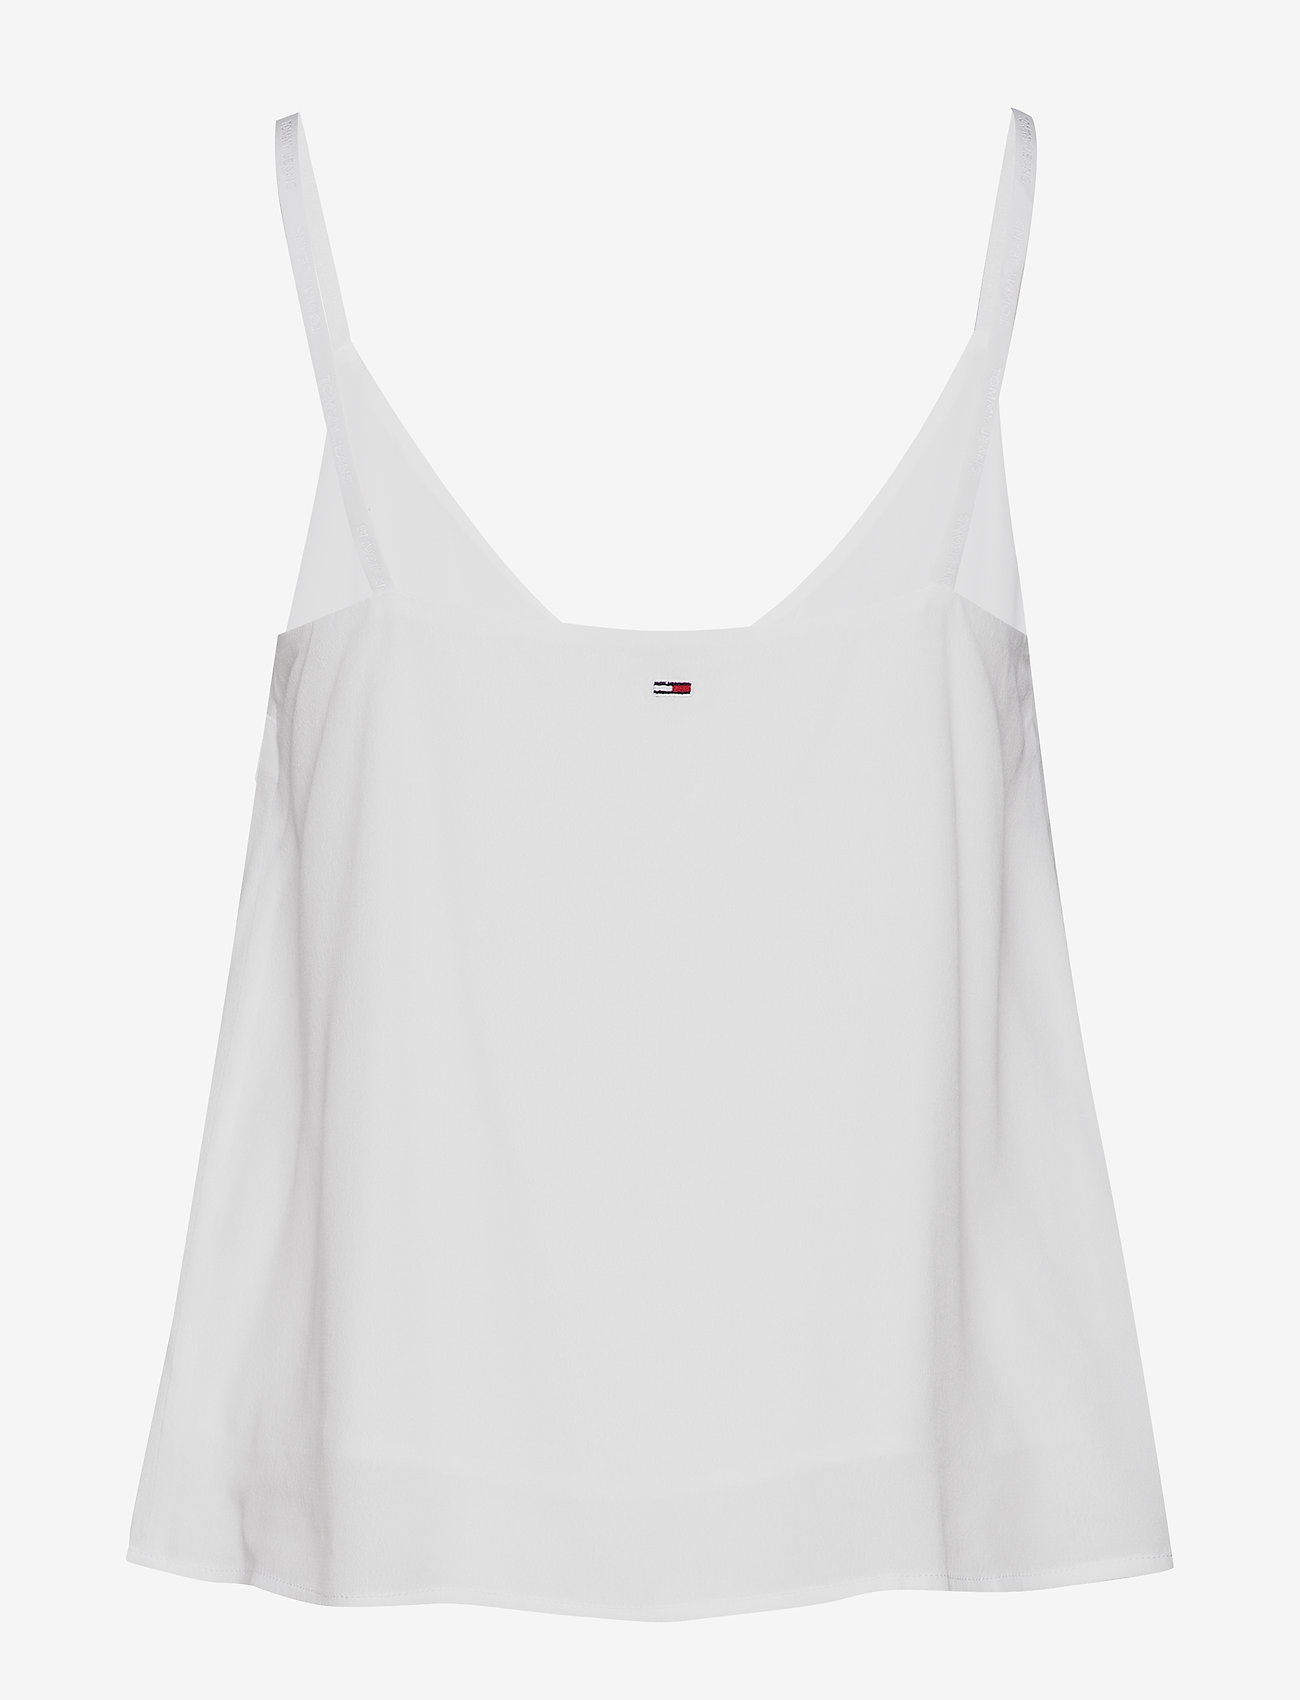 Tommy Jeans - TJW BRANDED STRAPS C - sleeveless tops - white - 1